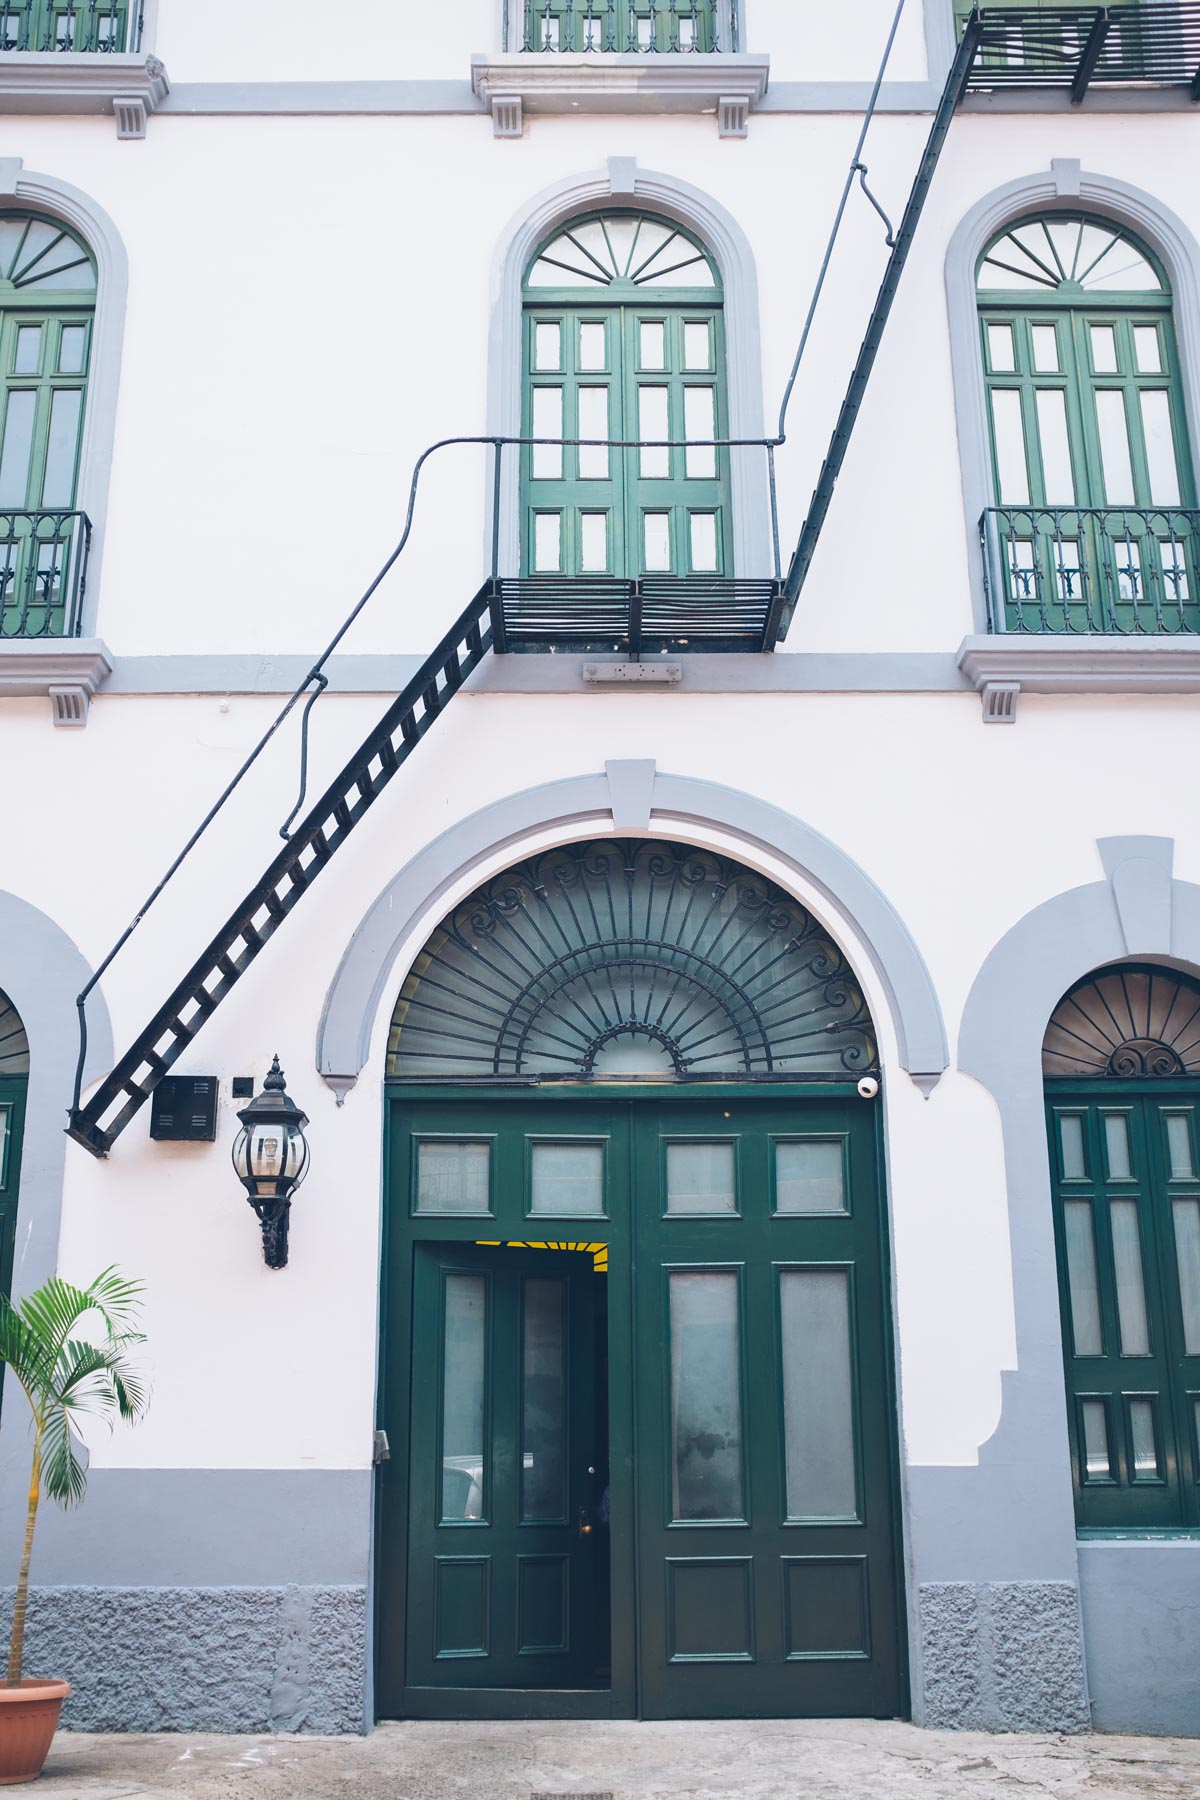 Stunning architectural details in Casco Viejo, Panama City